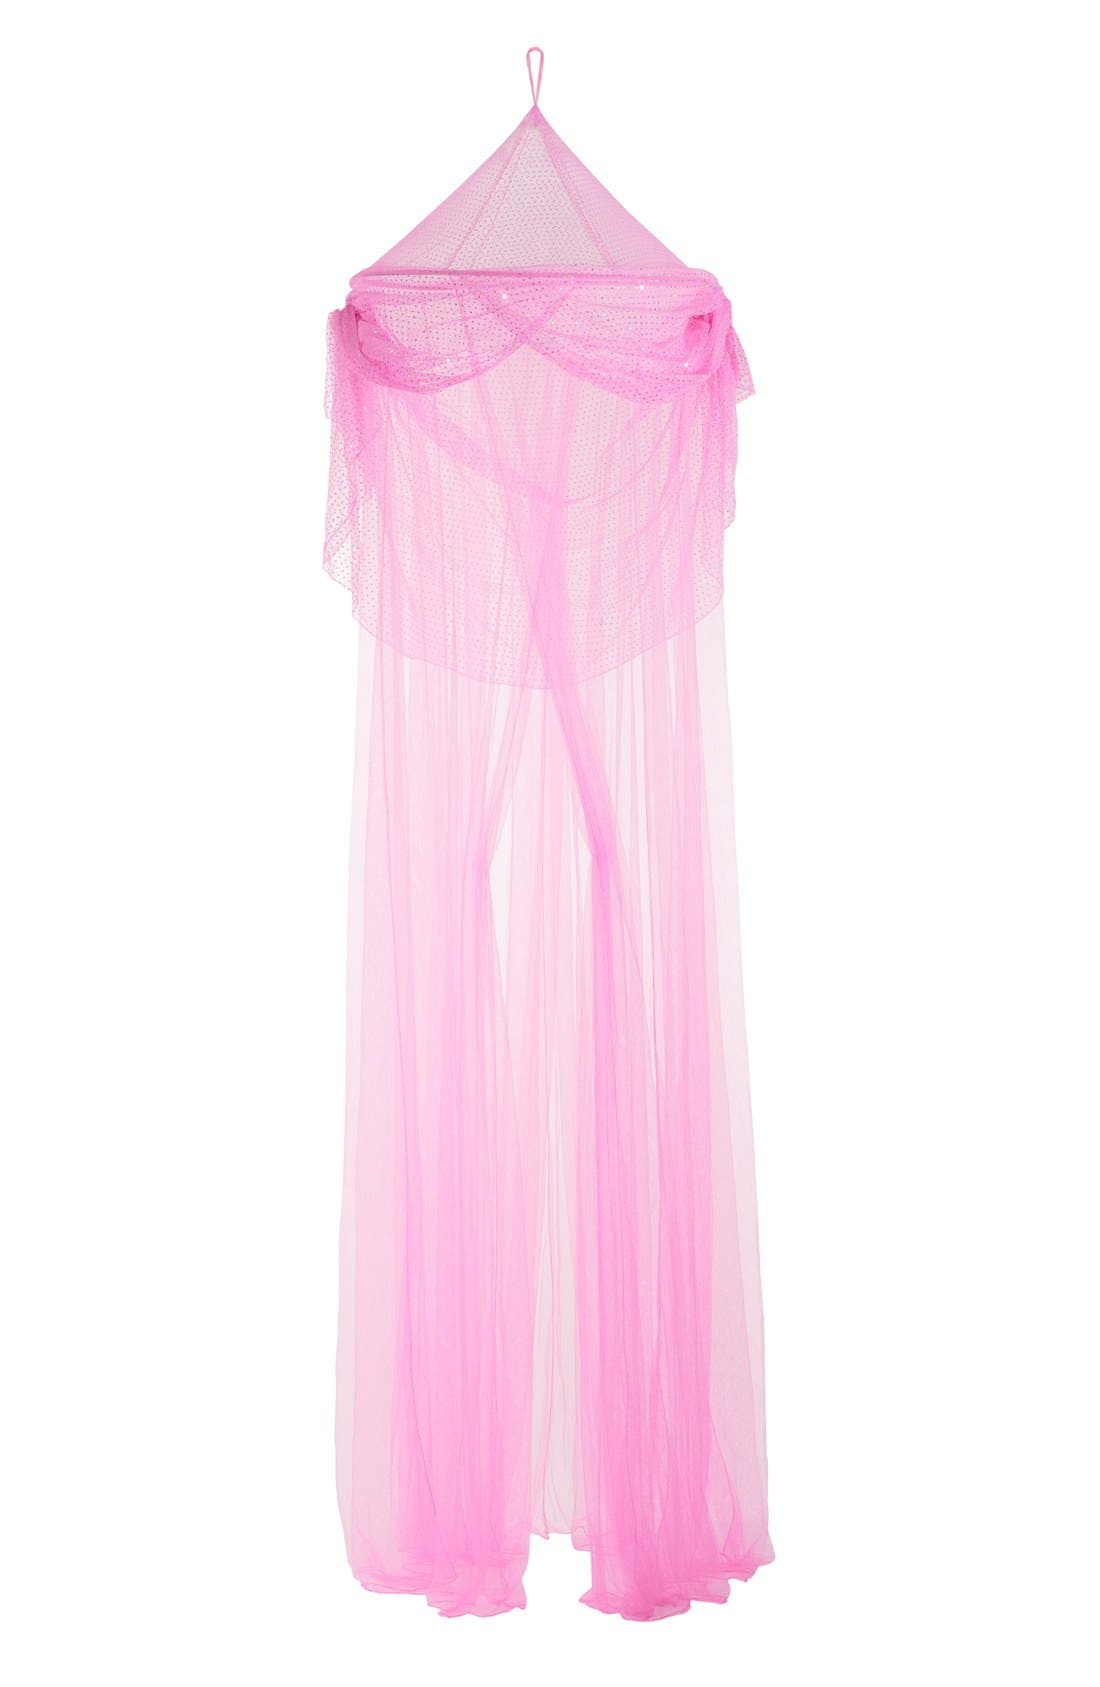 'Pink SparkleTastic' Bed Canopy,                             Main thumbnail 1, color,                             650